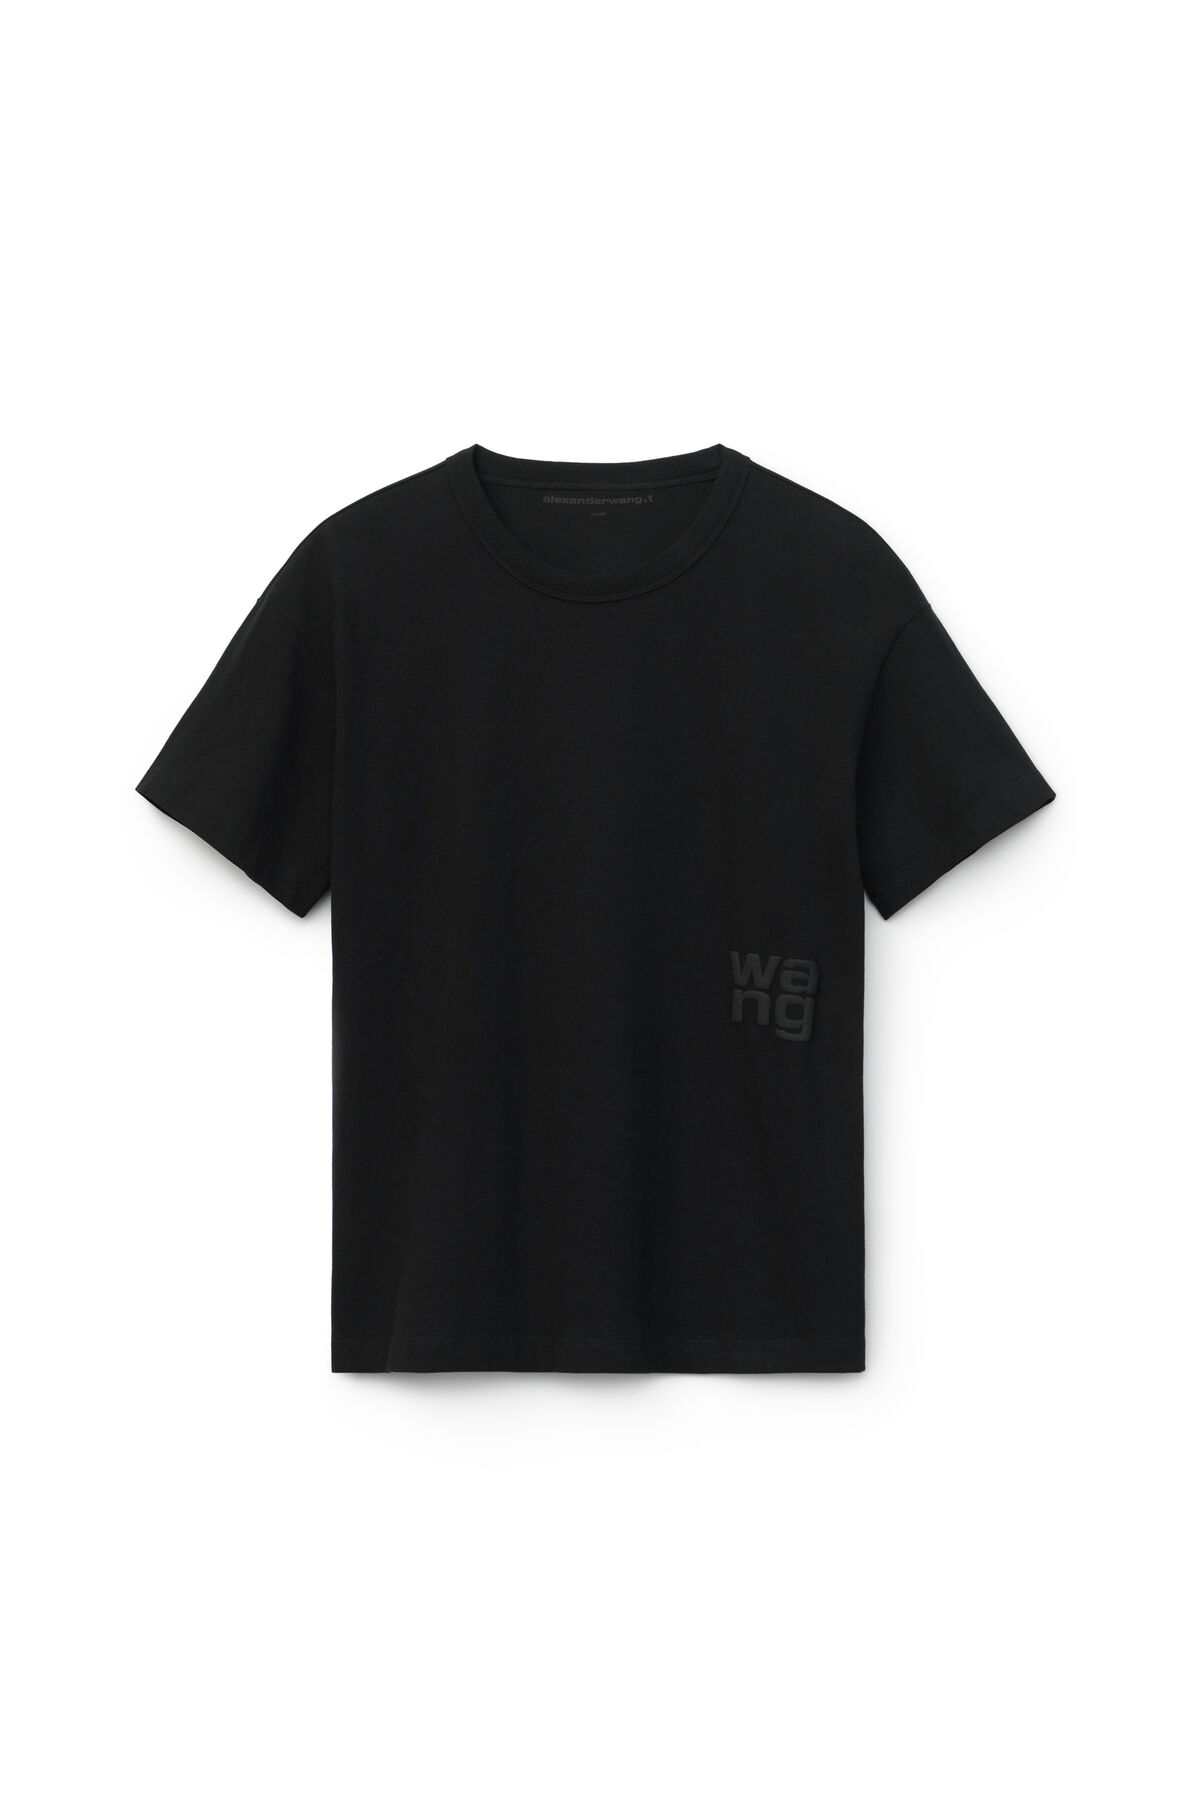 JERSEY LOGO TEE by Alexander Wang, available on alexanderwang.com for $85 Kylie Jenner Top SIMILAR PRODUCT